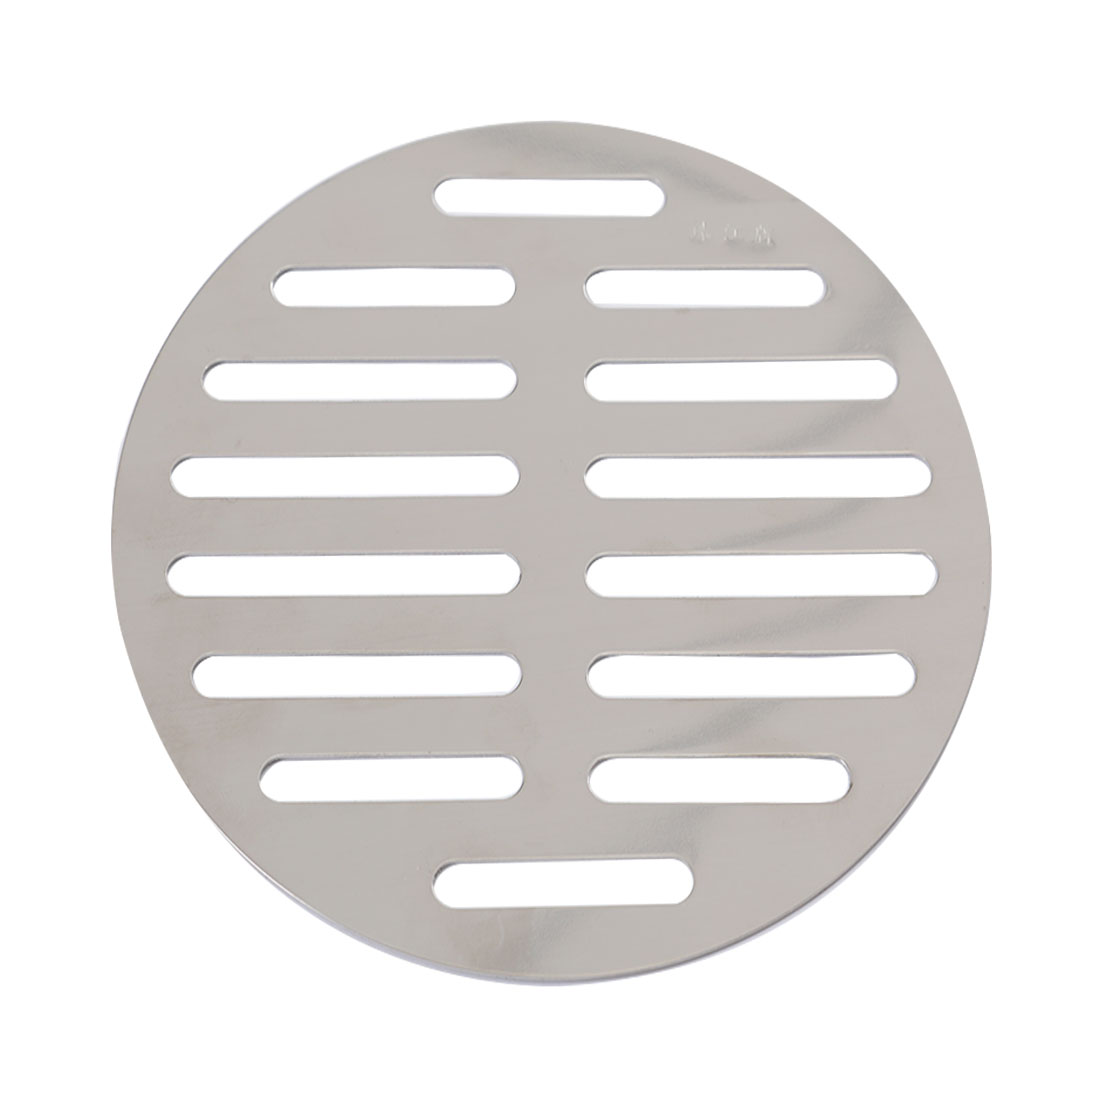 6 Inch Stainless Steel Floor Strainer Drain Cover Bath Sink Filter